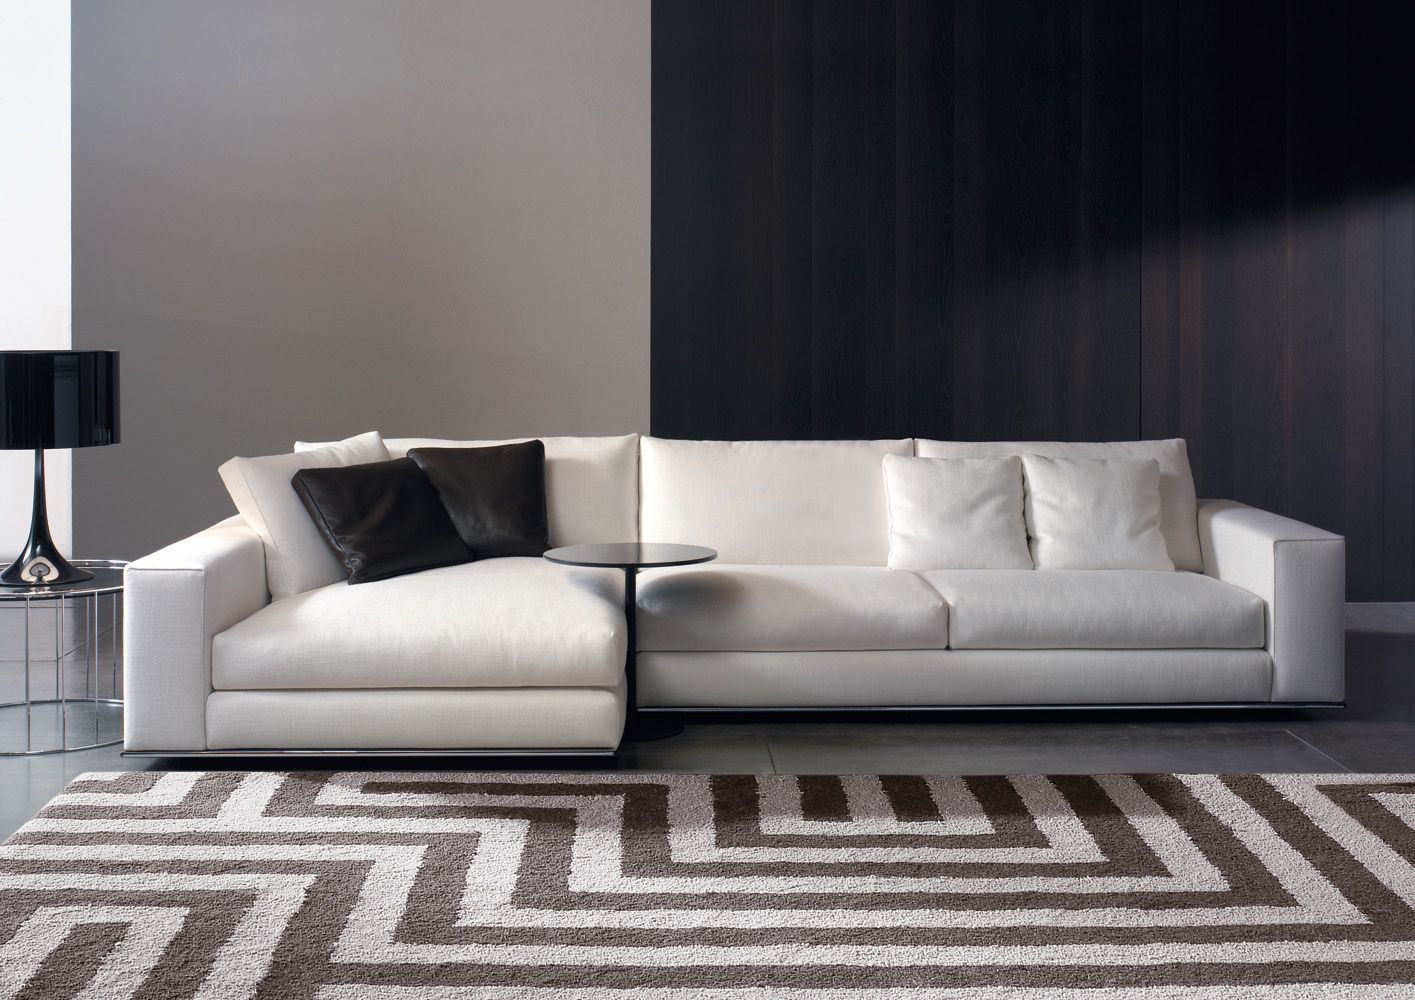 Fantastic Hamilton Sofa By Minotti This Looks More Comfortable Than Caraccident5 Cool Chair Designs And Ideas Caraccident5Info